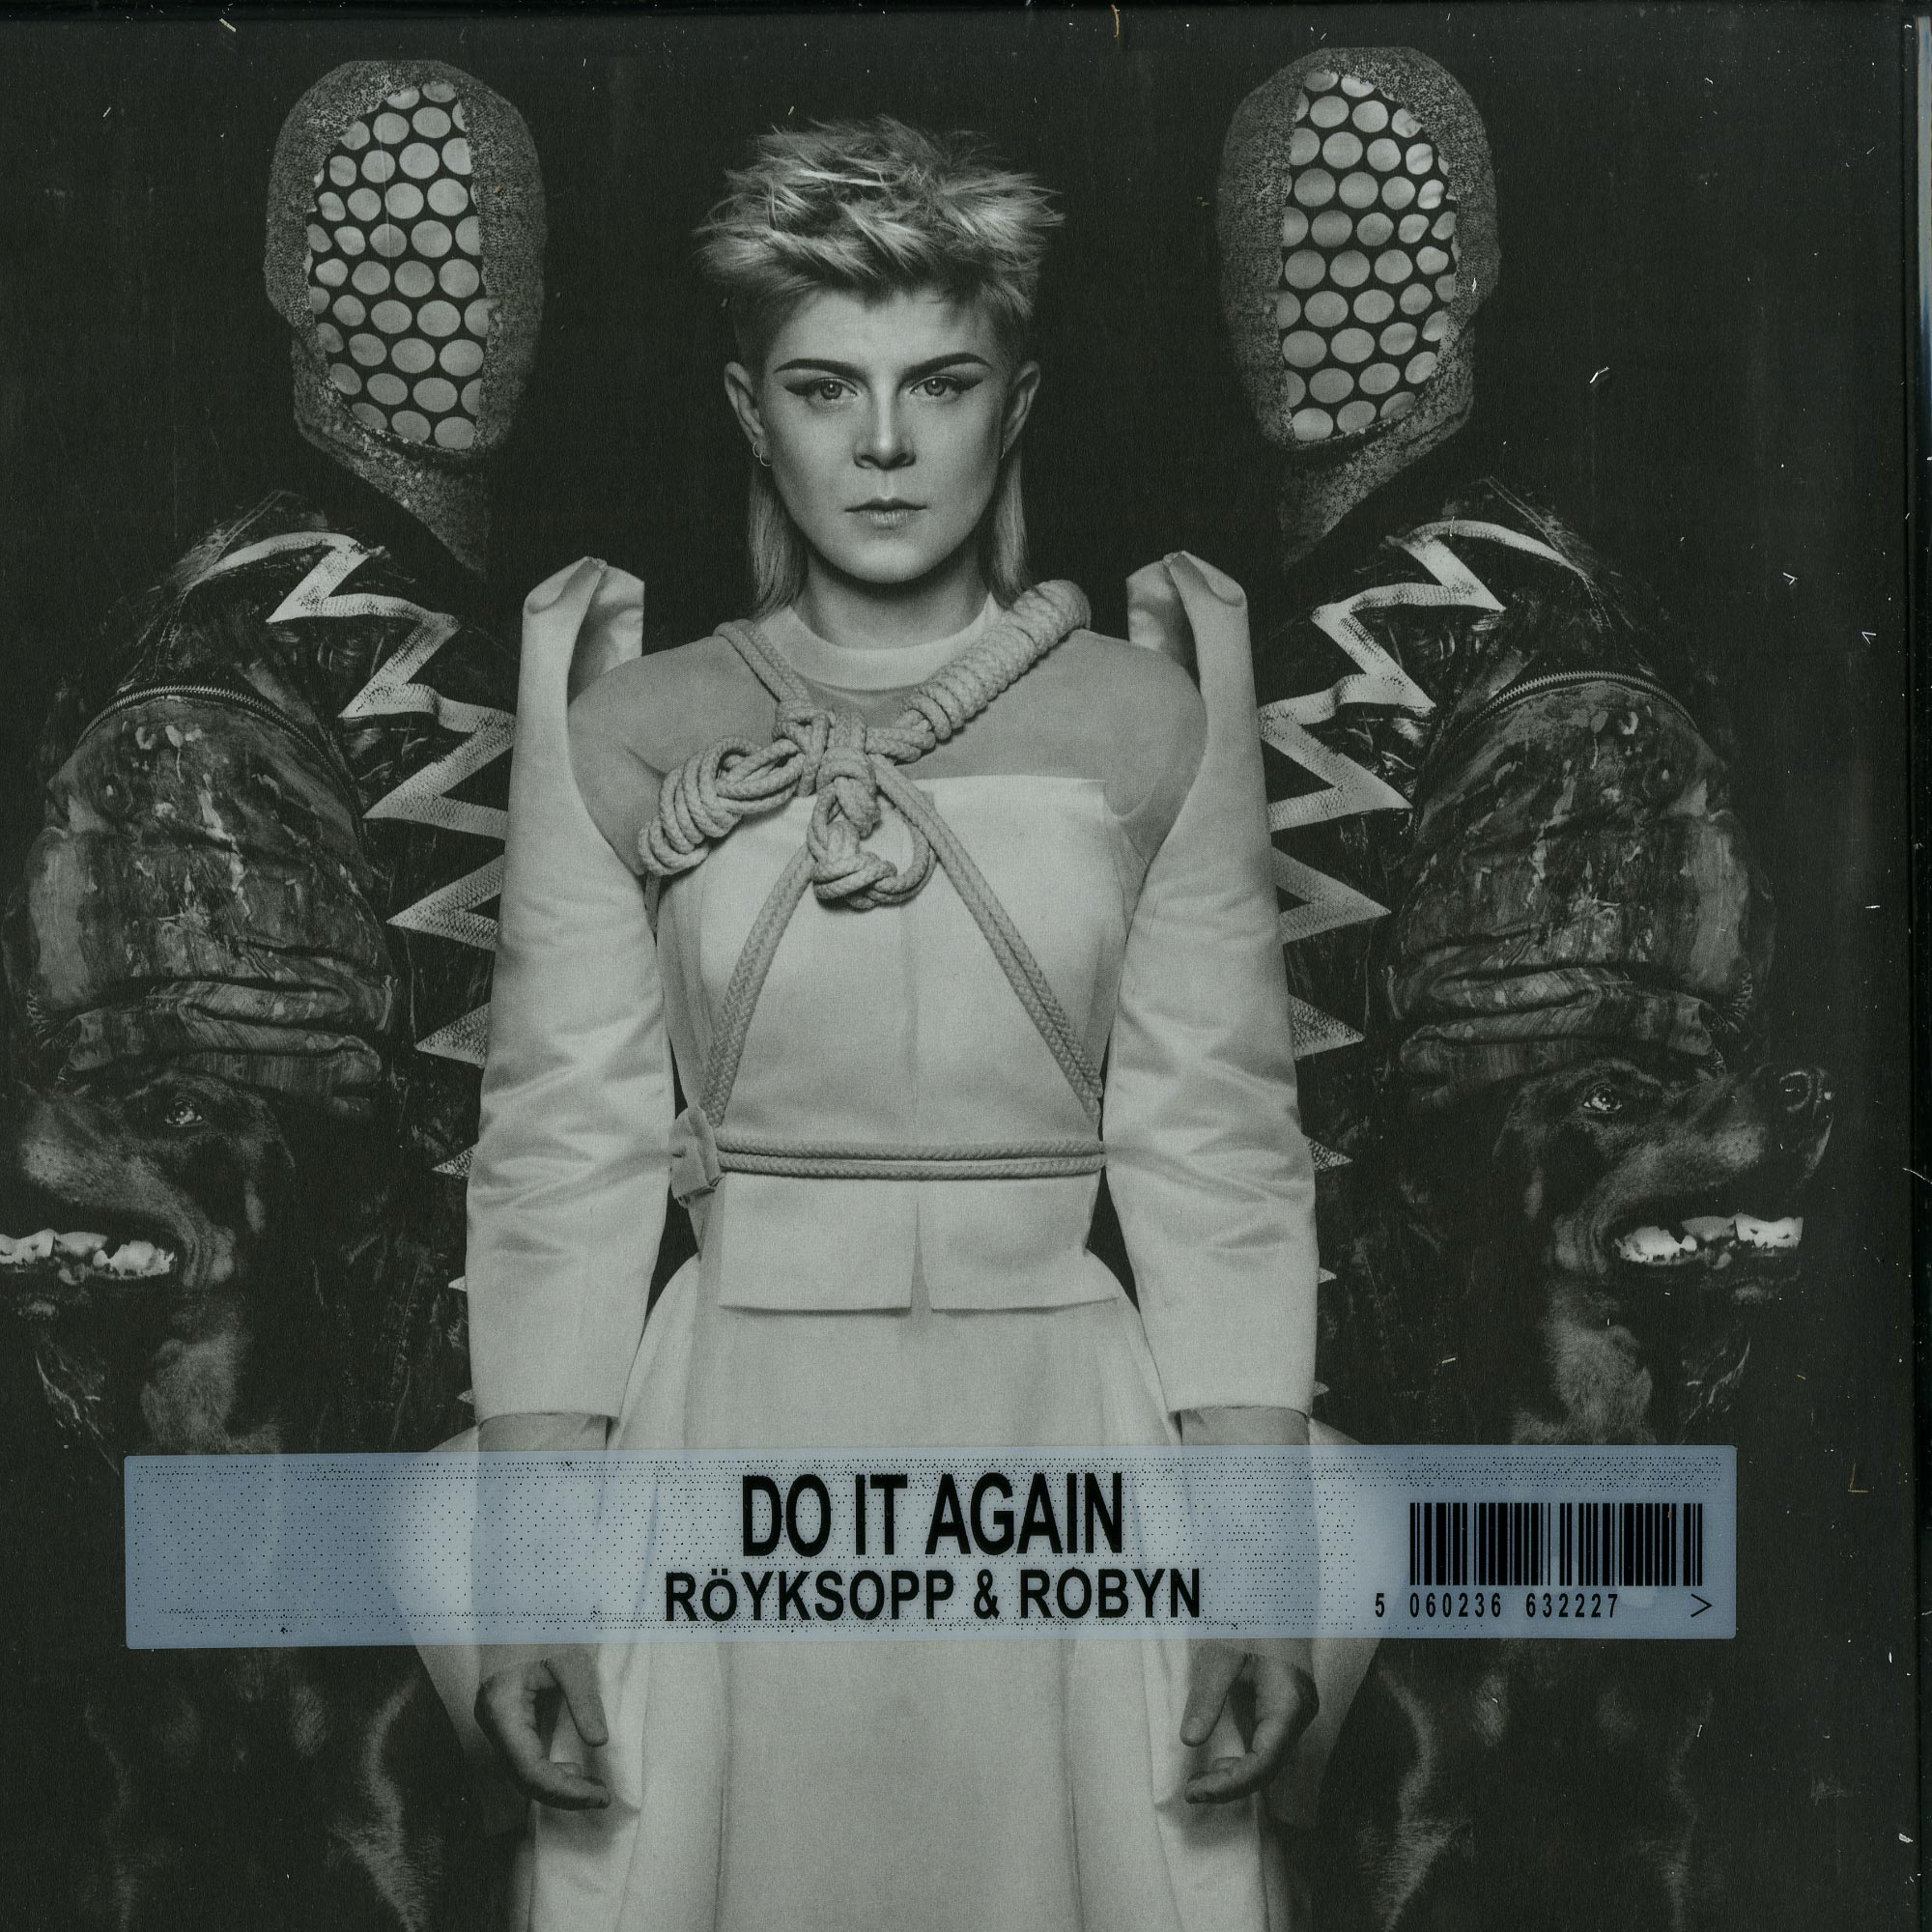 Royksopp & Robyn - DO IT AGAIN - WHITE LP / GATEFOLD SLEEVE